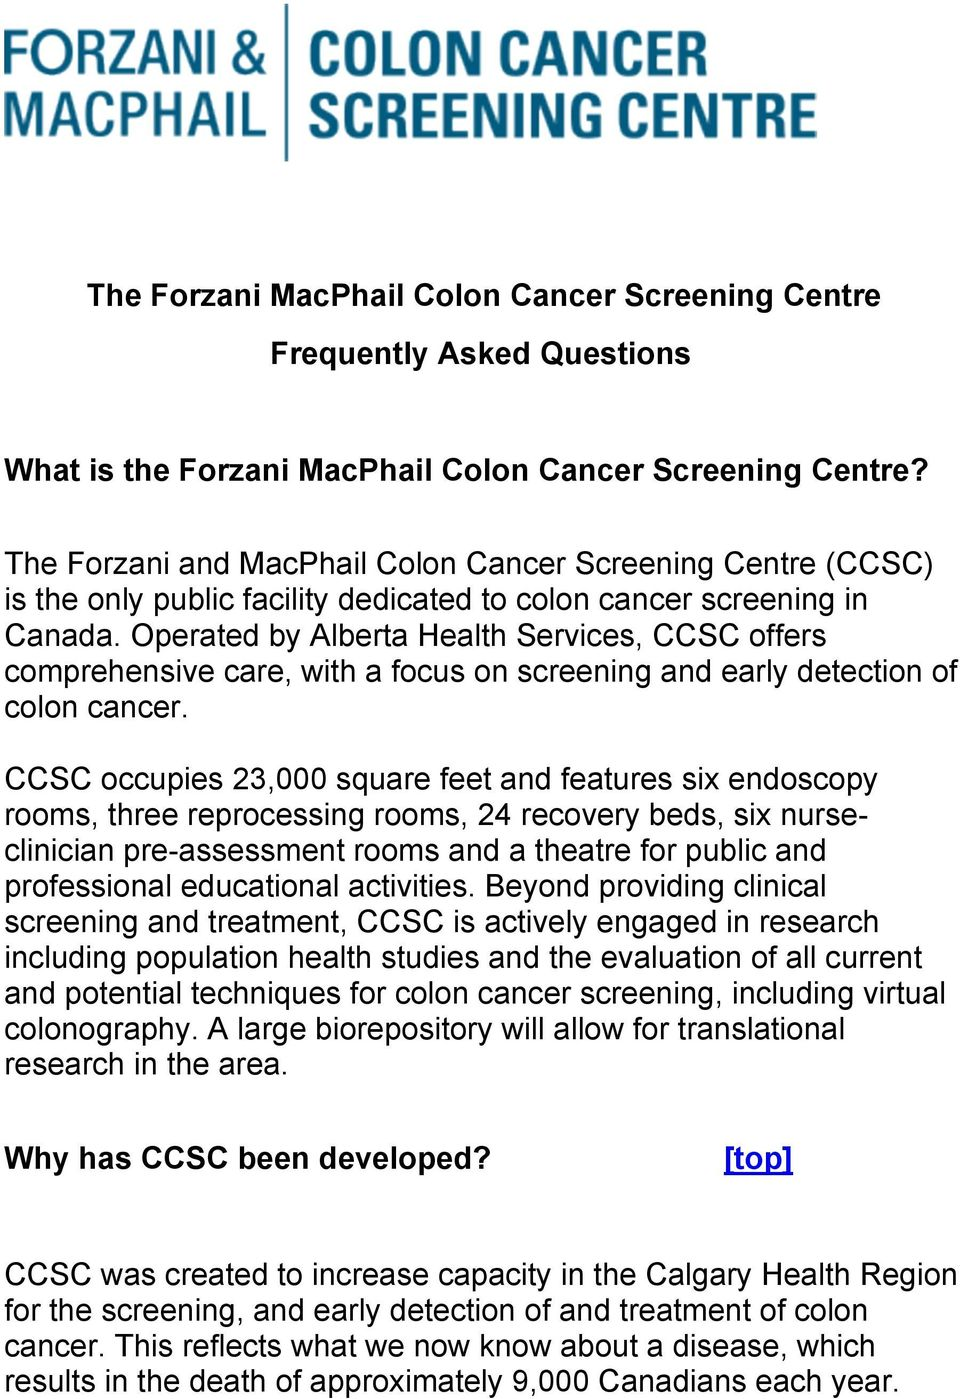 The Forzani Macphail Colon Cancer Screening Centre Frequently Asked Questions What Is The Forzani Macphail Colon Cancer Screening Centre Pdf Free Download